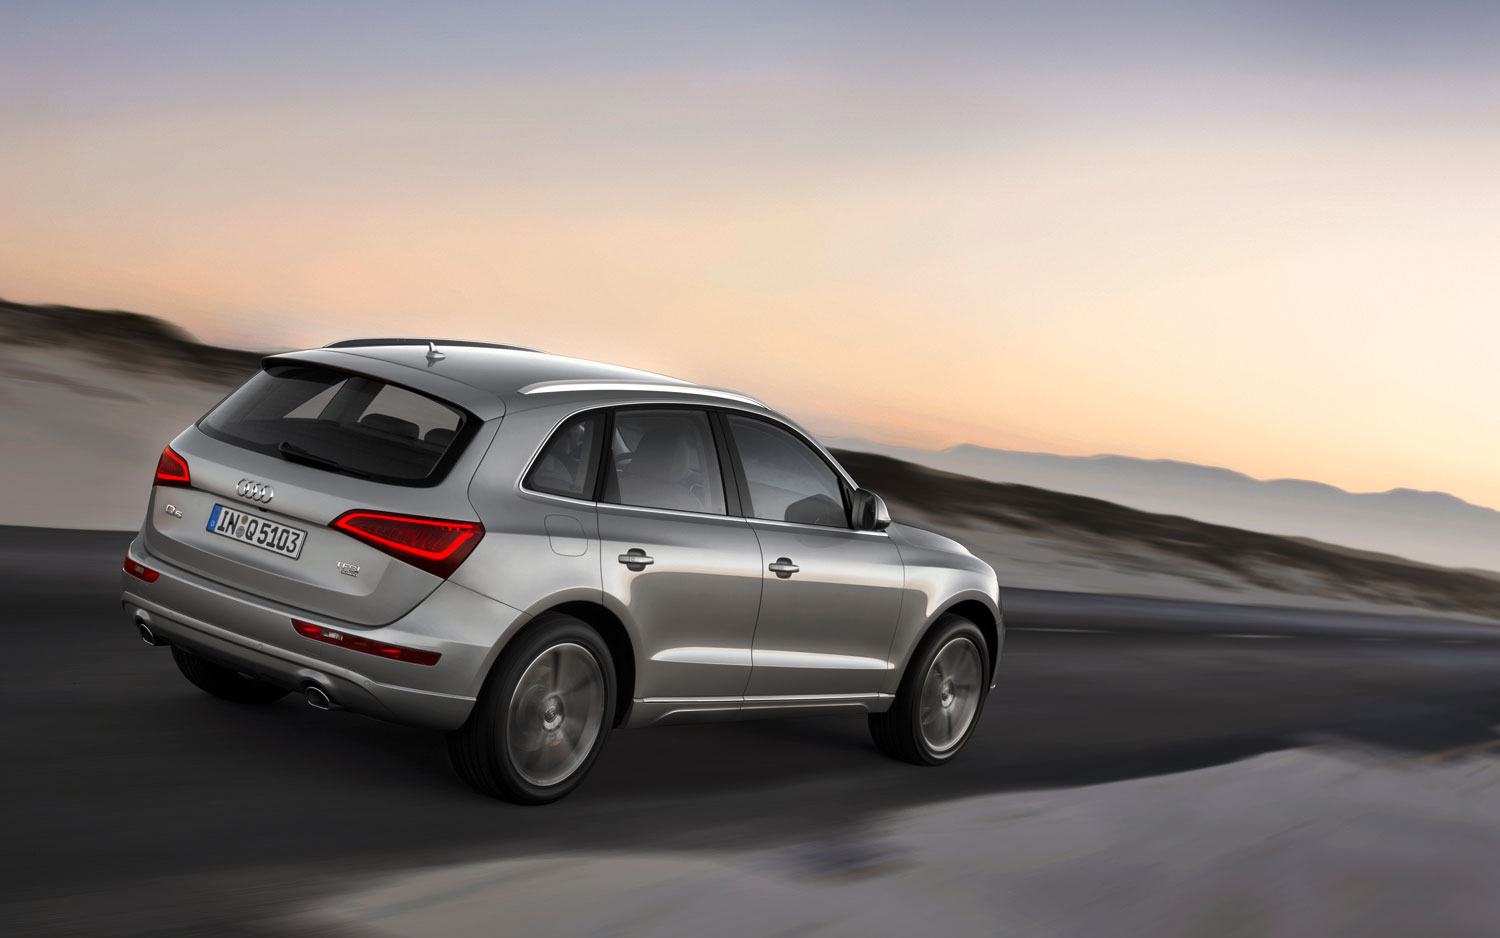 2013 Audi Q5 Right Rear Driving